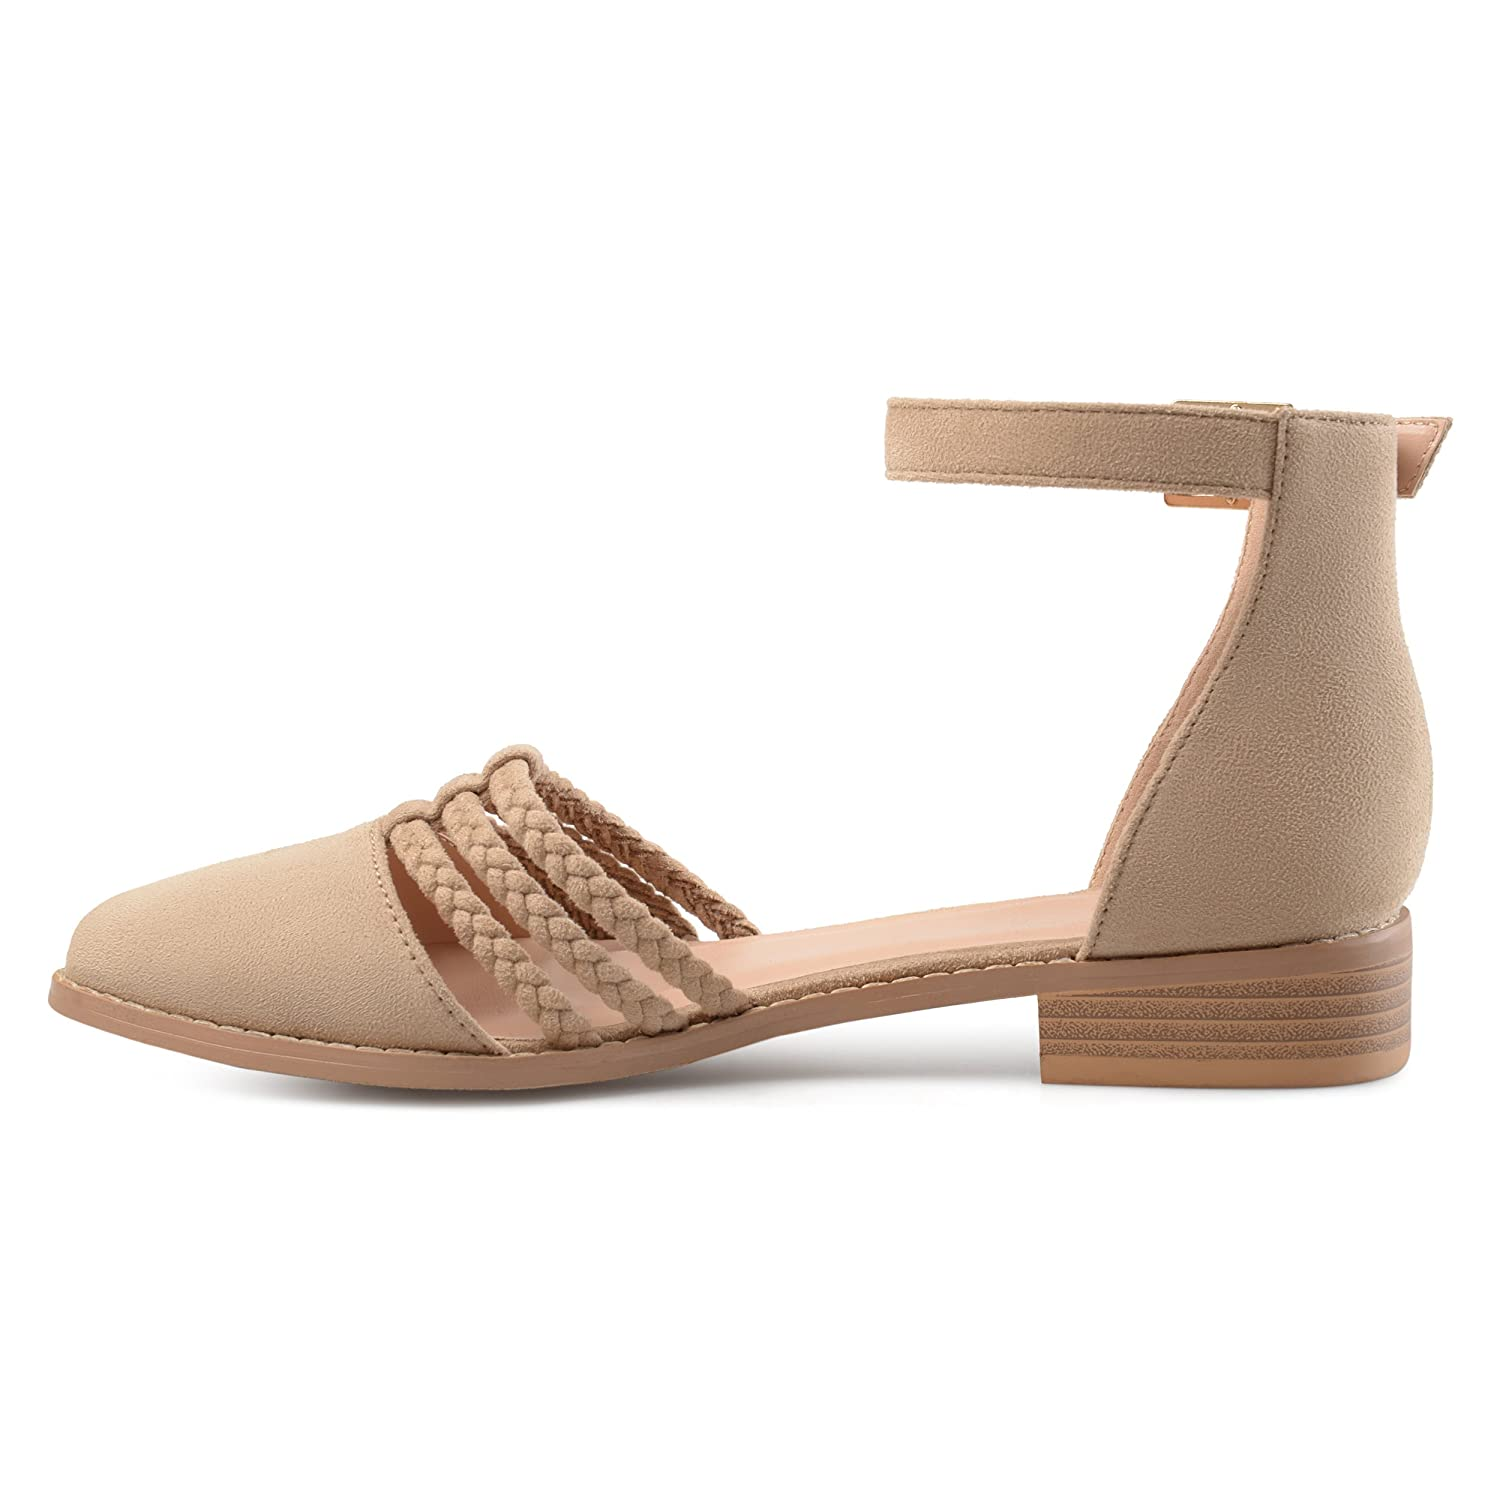 Womens Anette Faux Suede Ankle Wrap Braided Rope Flats Brinley Co